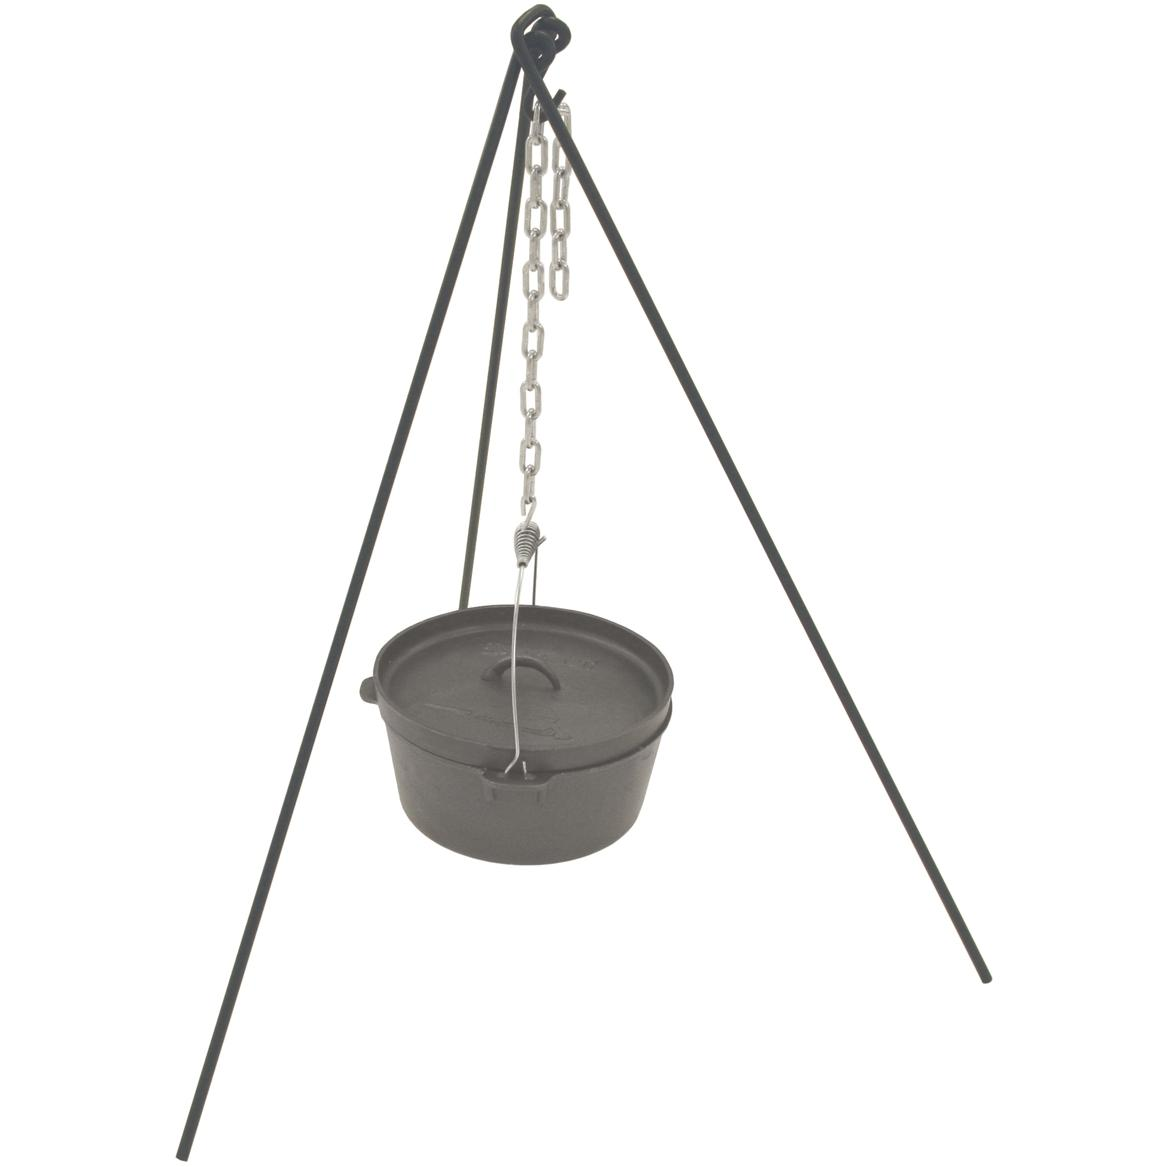 Bayou Classic Dutch Oven Tripod Stand With Chain And Bag